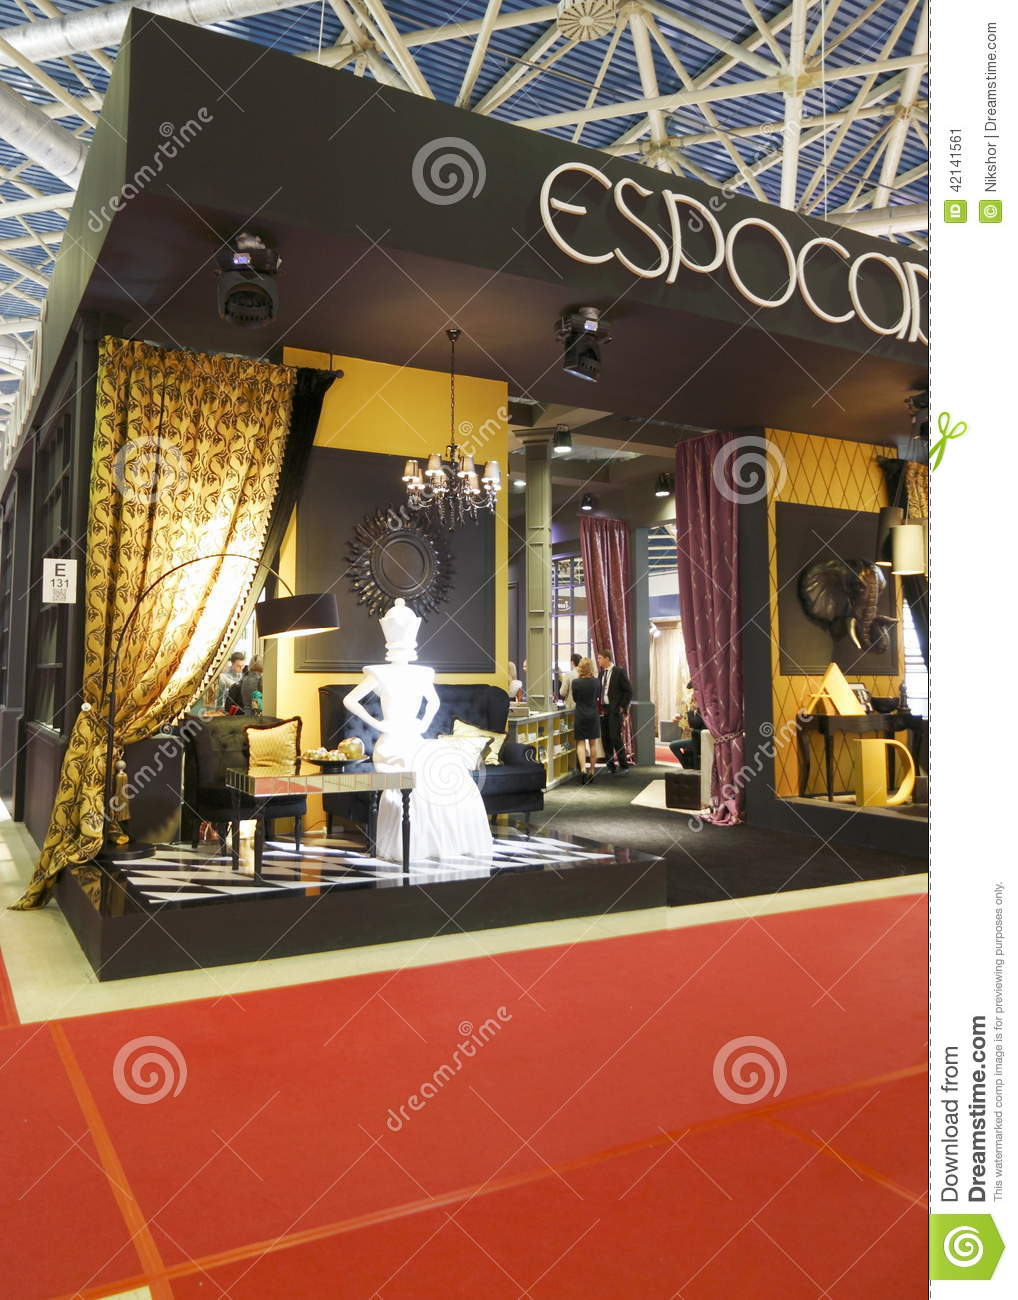 Exhibition Stand In Spanish : Contemporanea eventi exhibition stands and booths